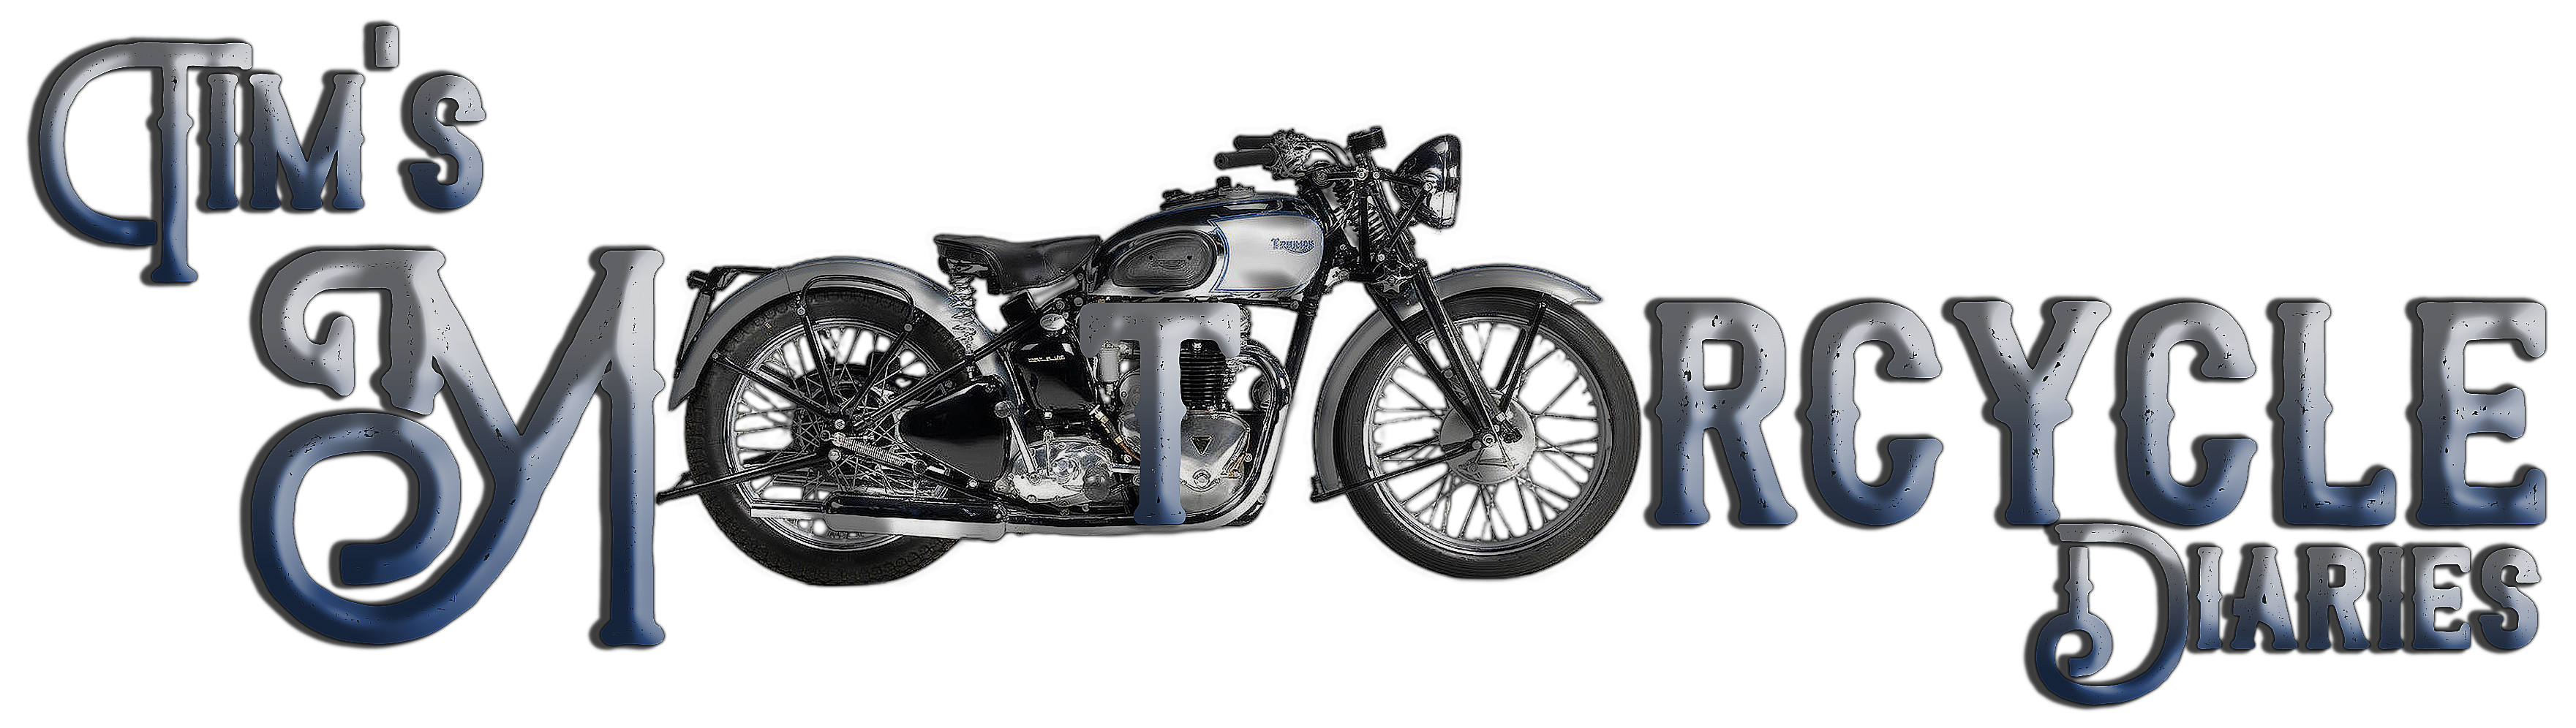 Tim's blog about riding, spannering and restoring motorcycles